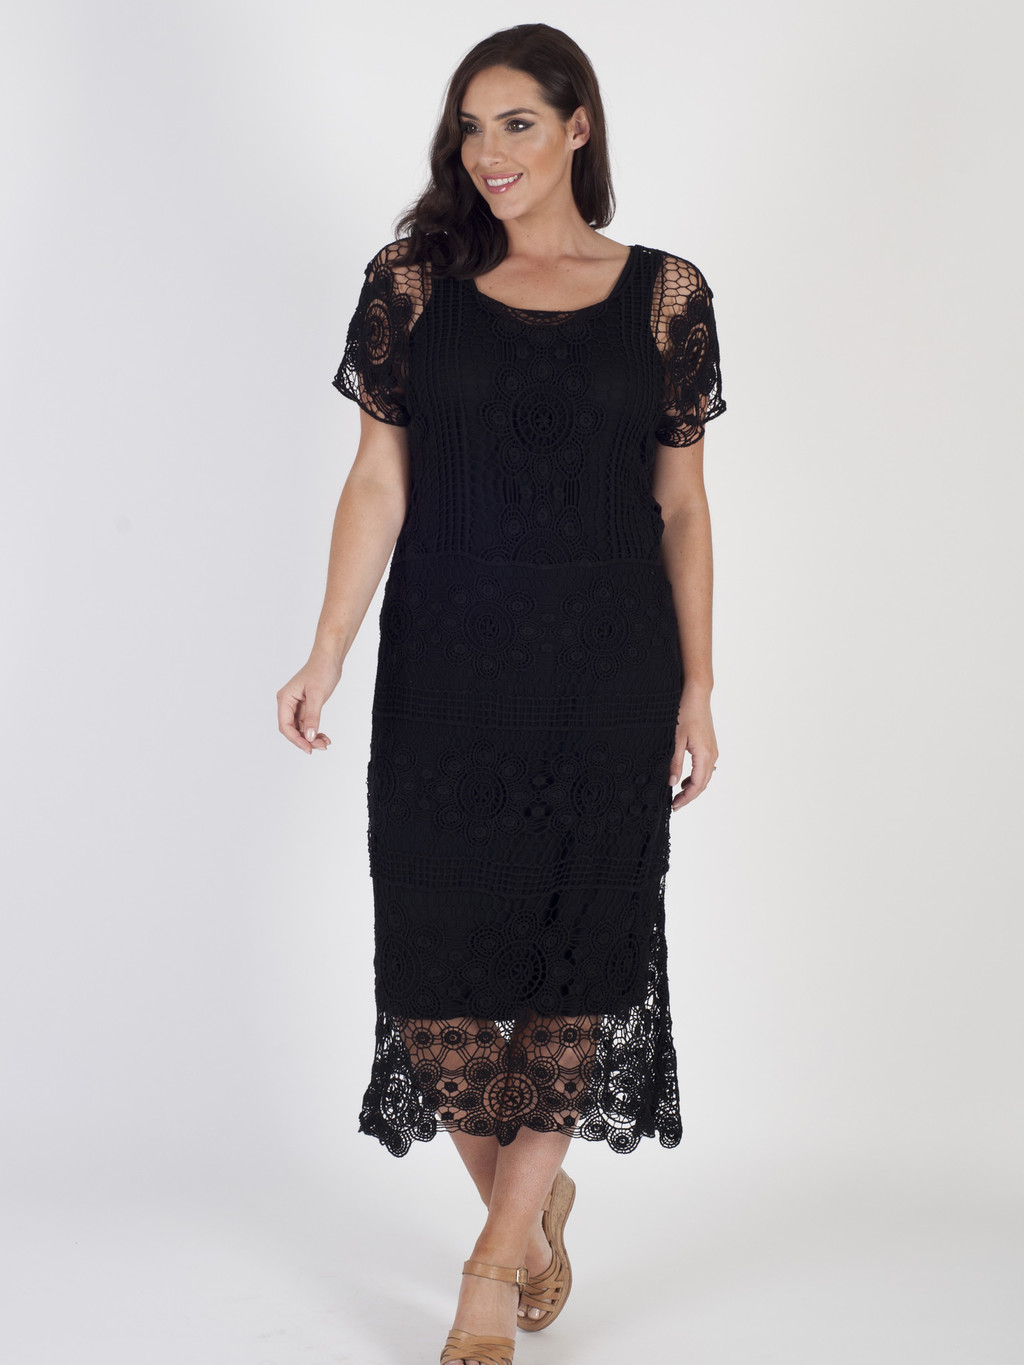 Black Crochet Dress With Lining - style: shift; length: calf length; neckline: round neck; predominant colour: black; occasions: casual, holiday; fit: body skimming; fibres: polyester/polyamide - 100%; sleeve length: short sleeve; sleeve style: standard; texture group: knits/crochet; pattern type: knitted - other; pattern size: standard; pattern: patterned/print; shoulder detail: sheer at shoulder; season: s/s 2016; wardrobe: highlight